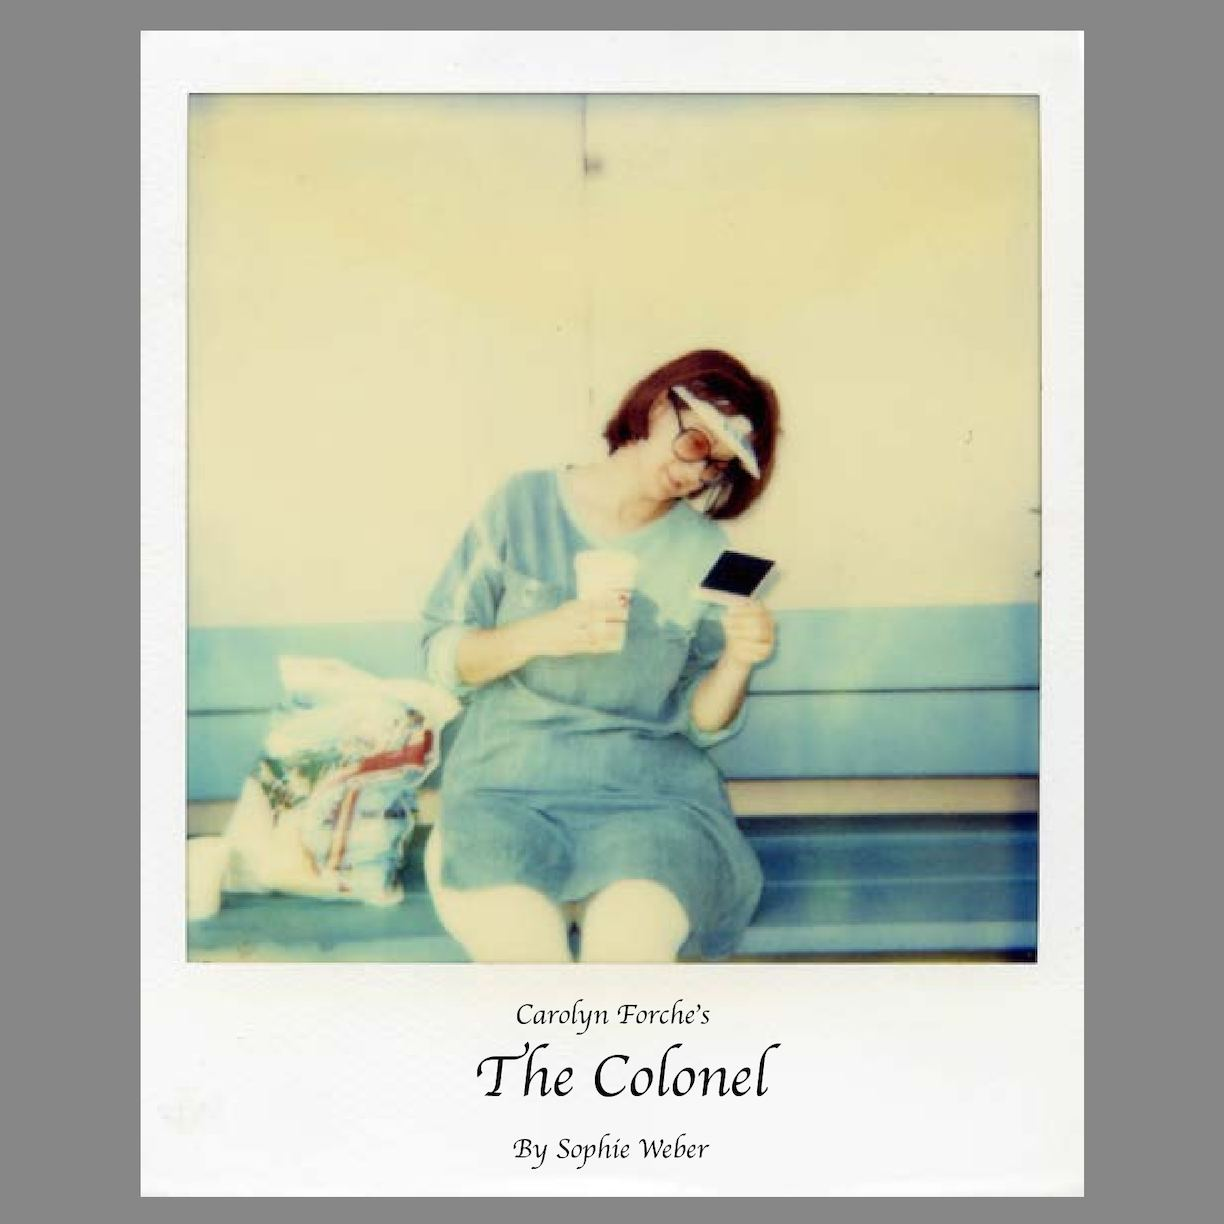 the colonel carolyn forche Carolyn forché - poet from the archive: carolyn forche and galway kinnell on april 28, 1950, carolyn forché was born in detroit, michigan.